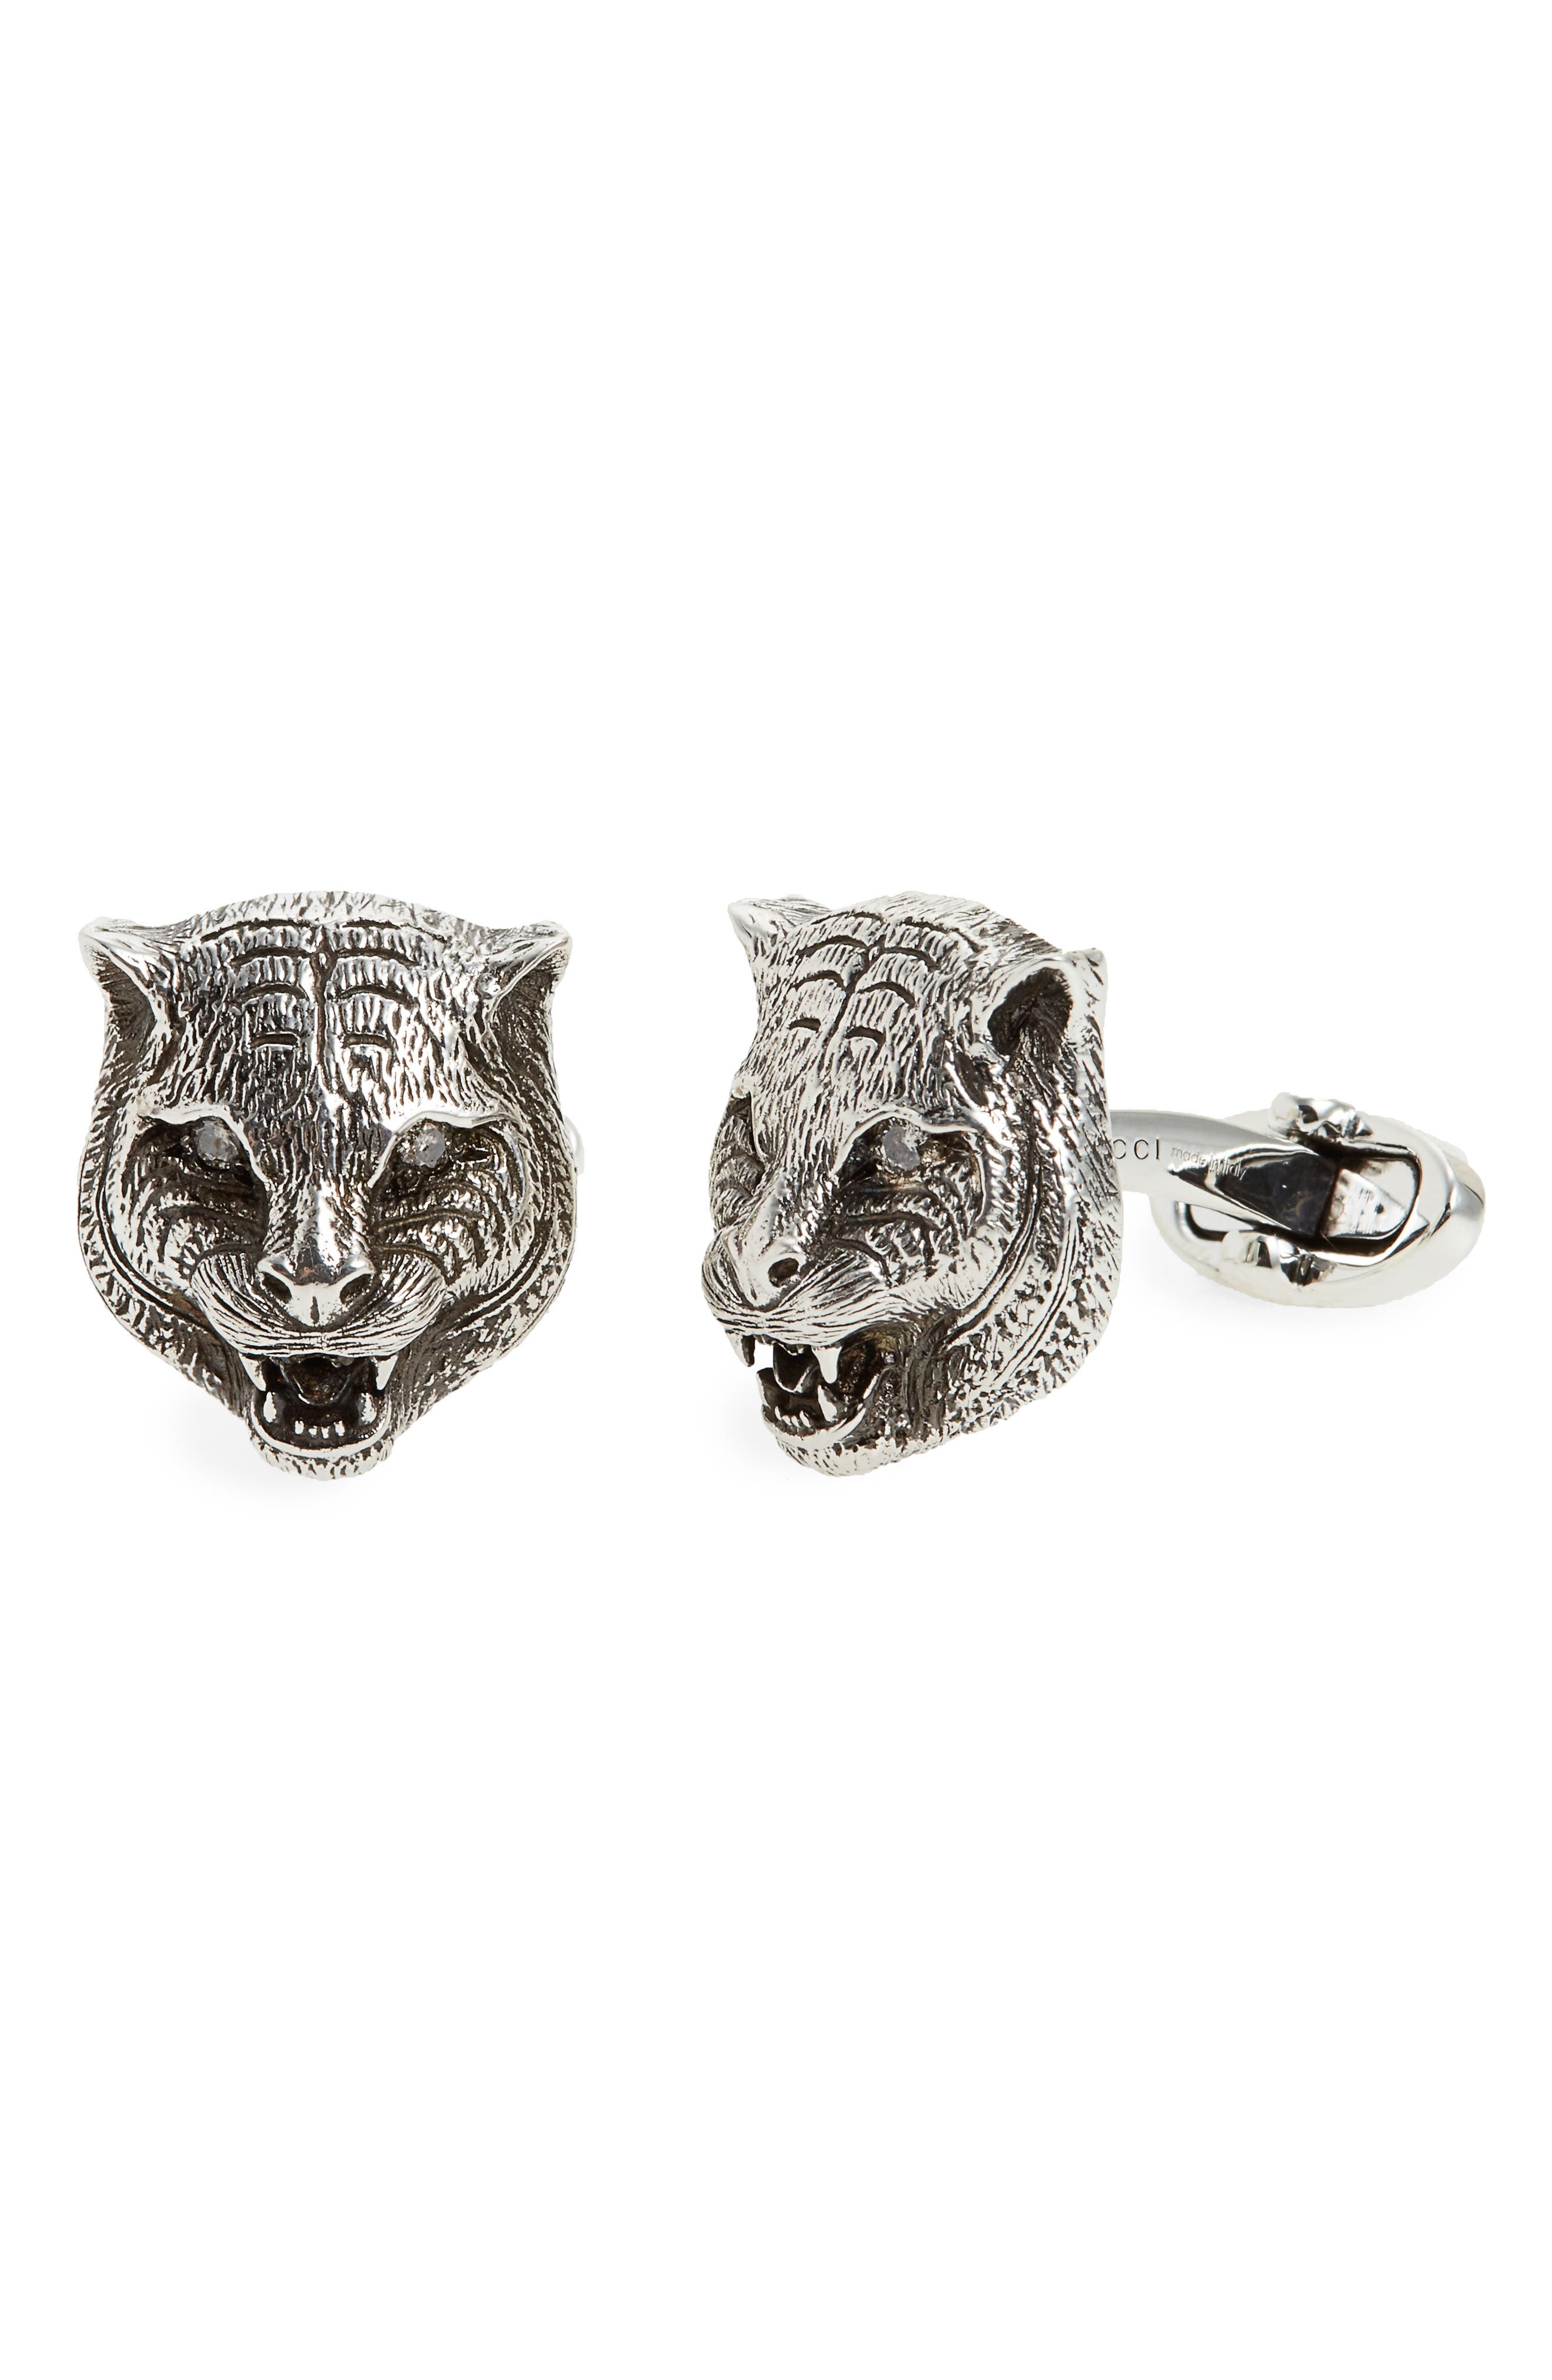 Garden Wolf Cuff Links,                         Main,                         color, 070